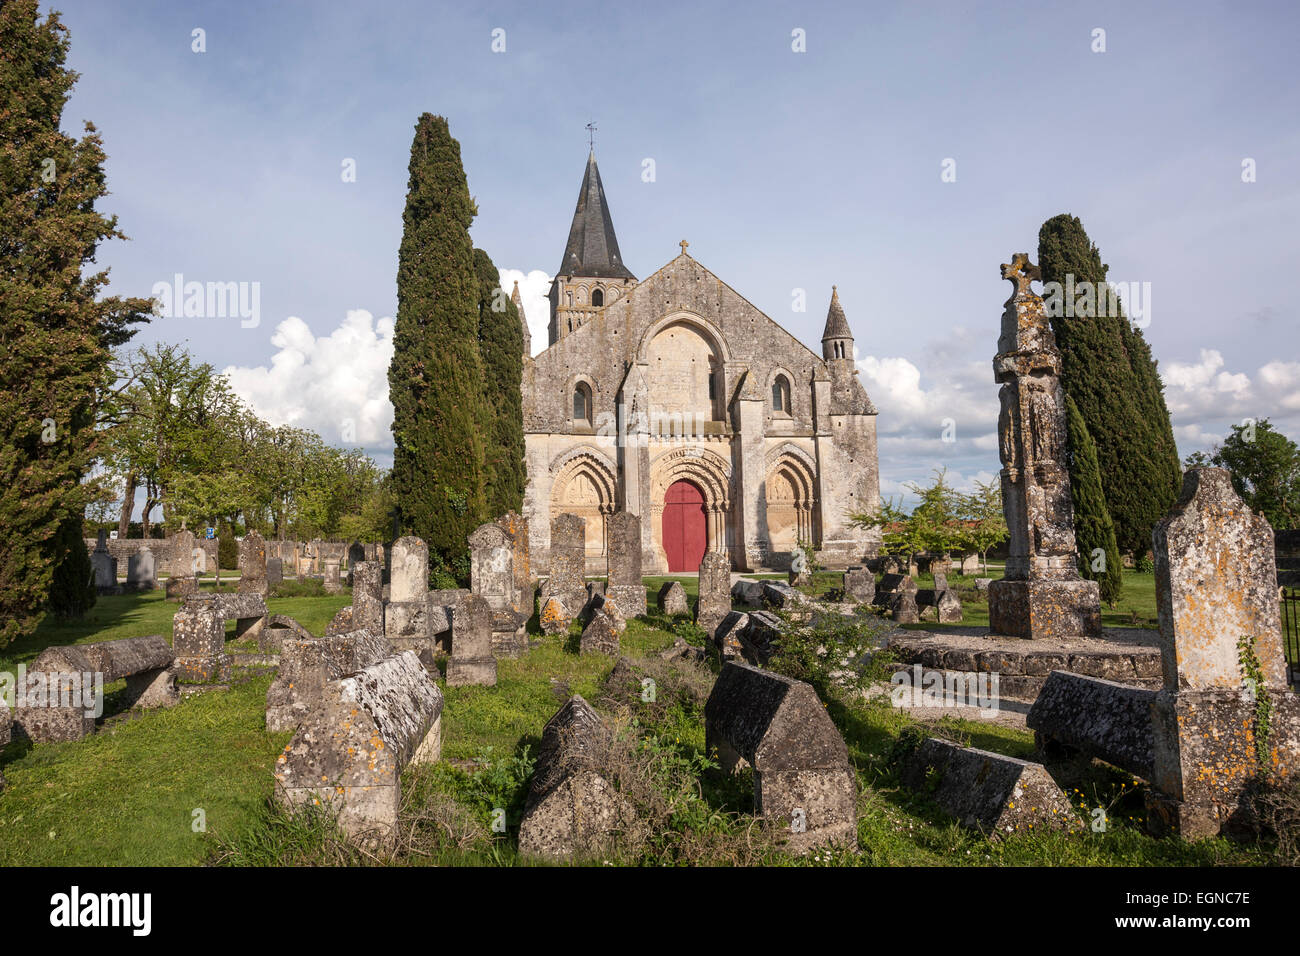 Cemetery and the front of the Church of Saint-Pierre-de-la-Tour d'Aulnay. - Stock Image